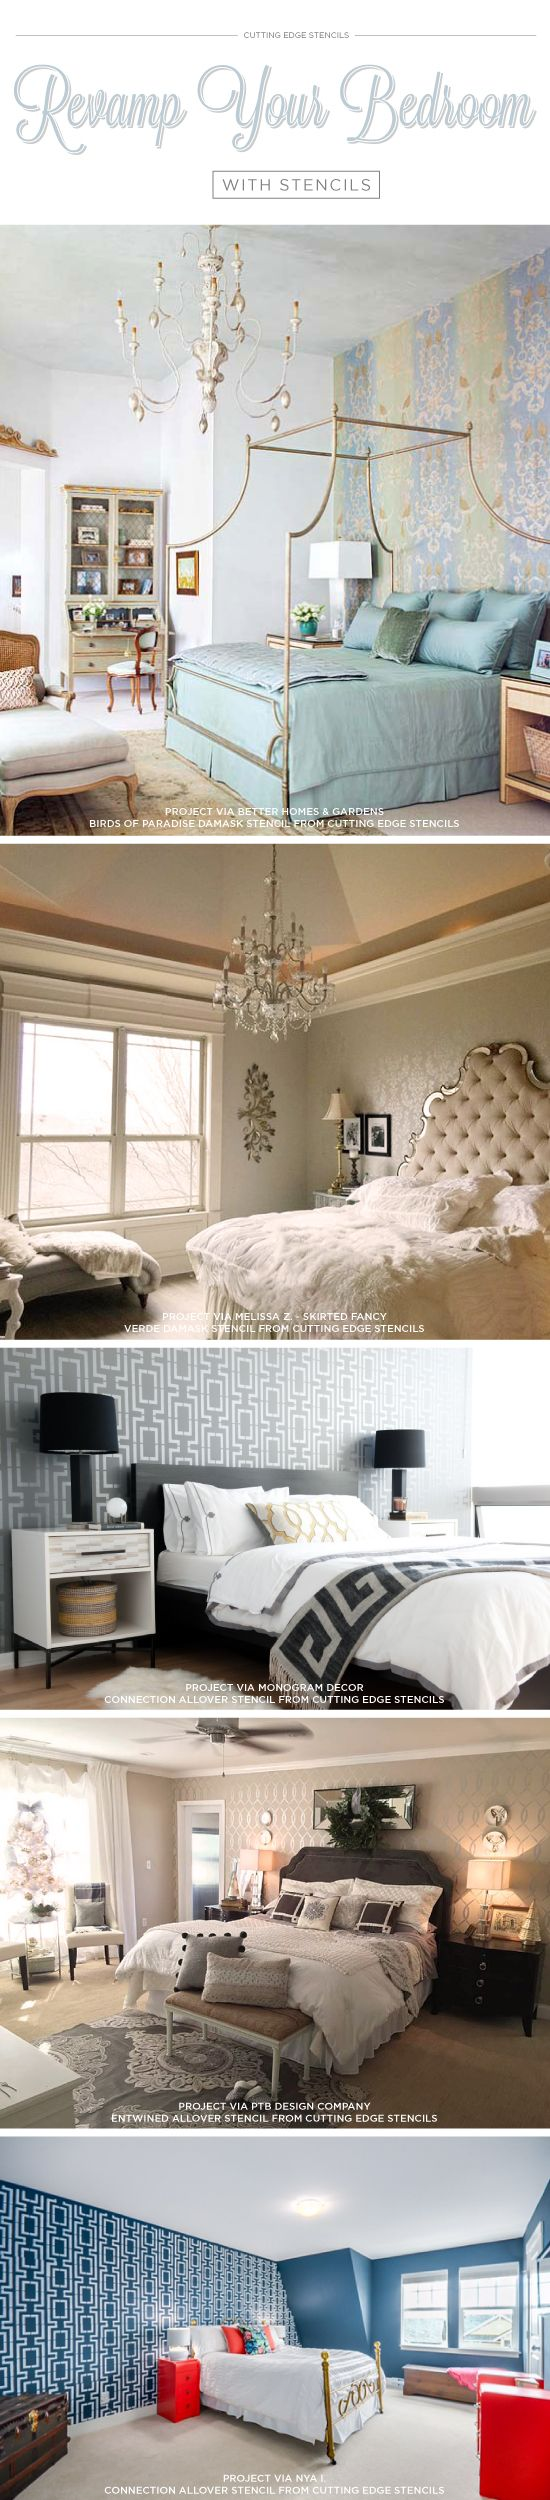 Cutting Edge Stencils shares bedroom decorating ideas featuring DIY stenciled accent walls. http://www.cuttingedgestencils.com/wall-stencils-stencil-designs.html